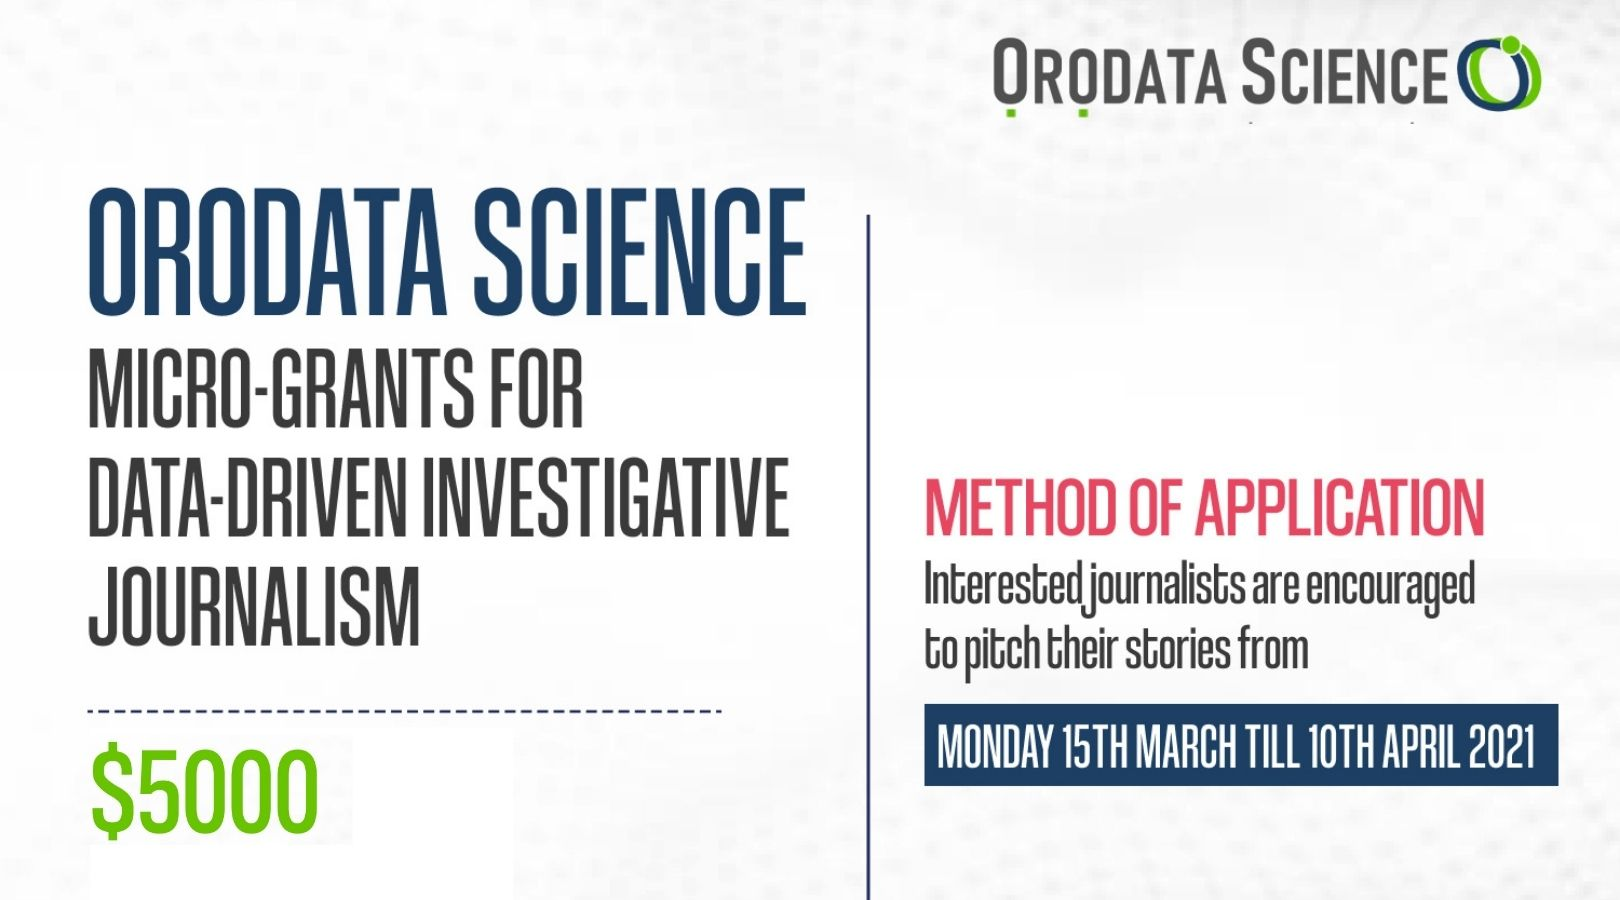 Orodata Science Micro-Grants For Data-Driven Investigative Journalism 2021